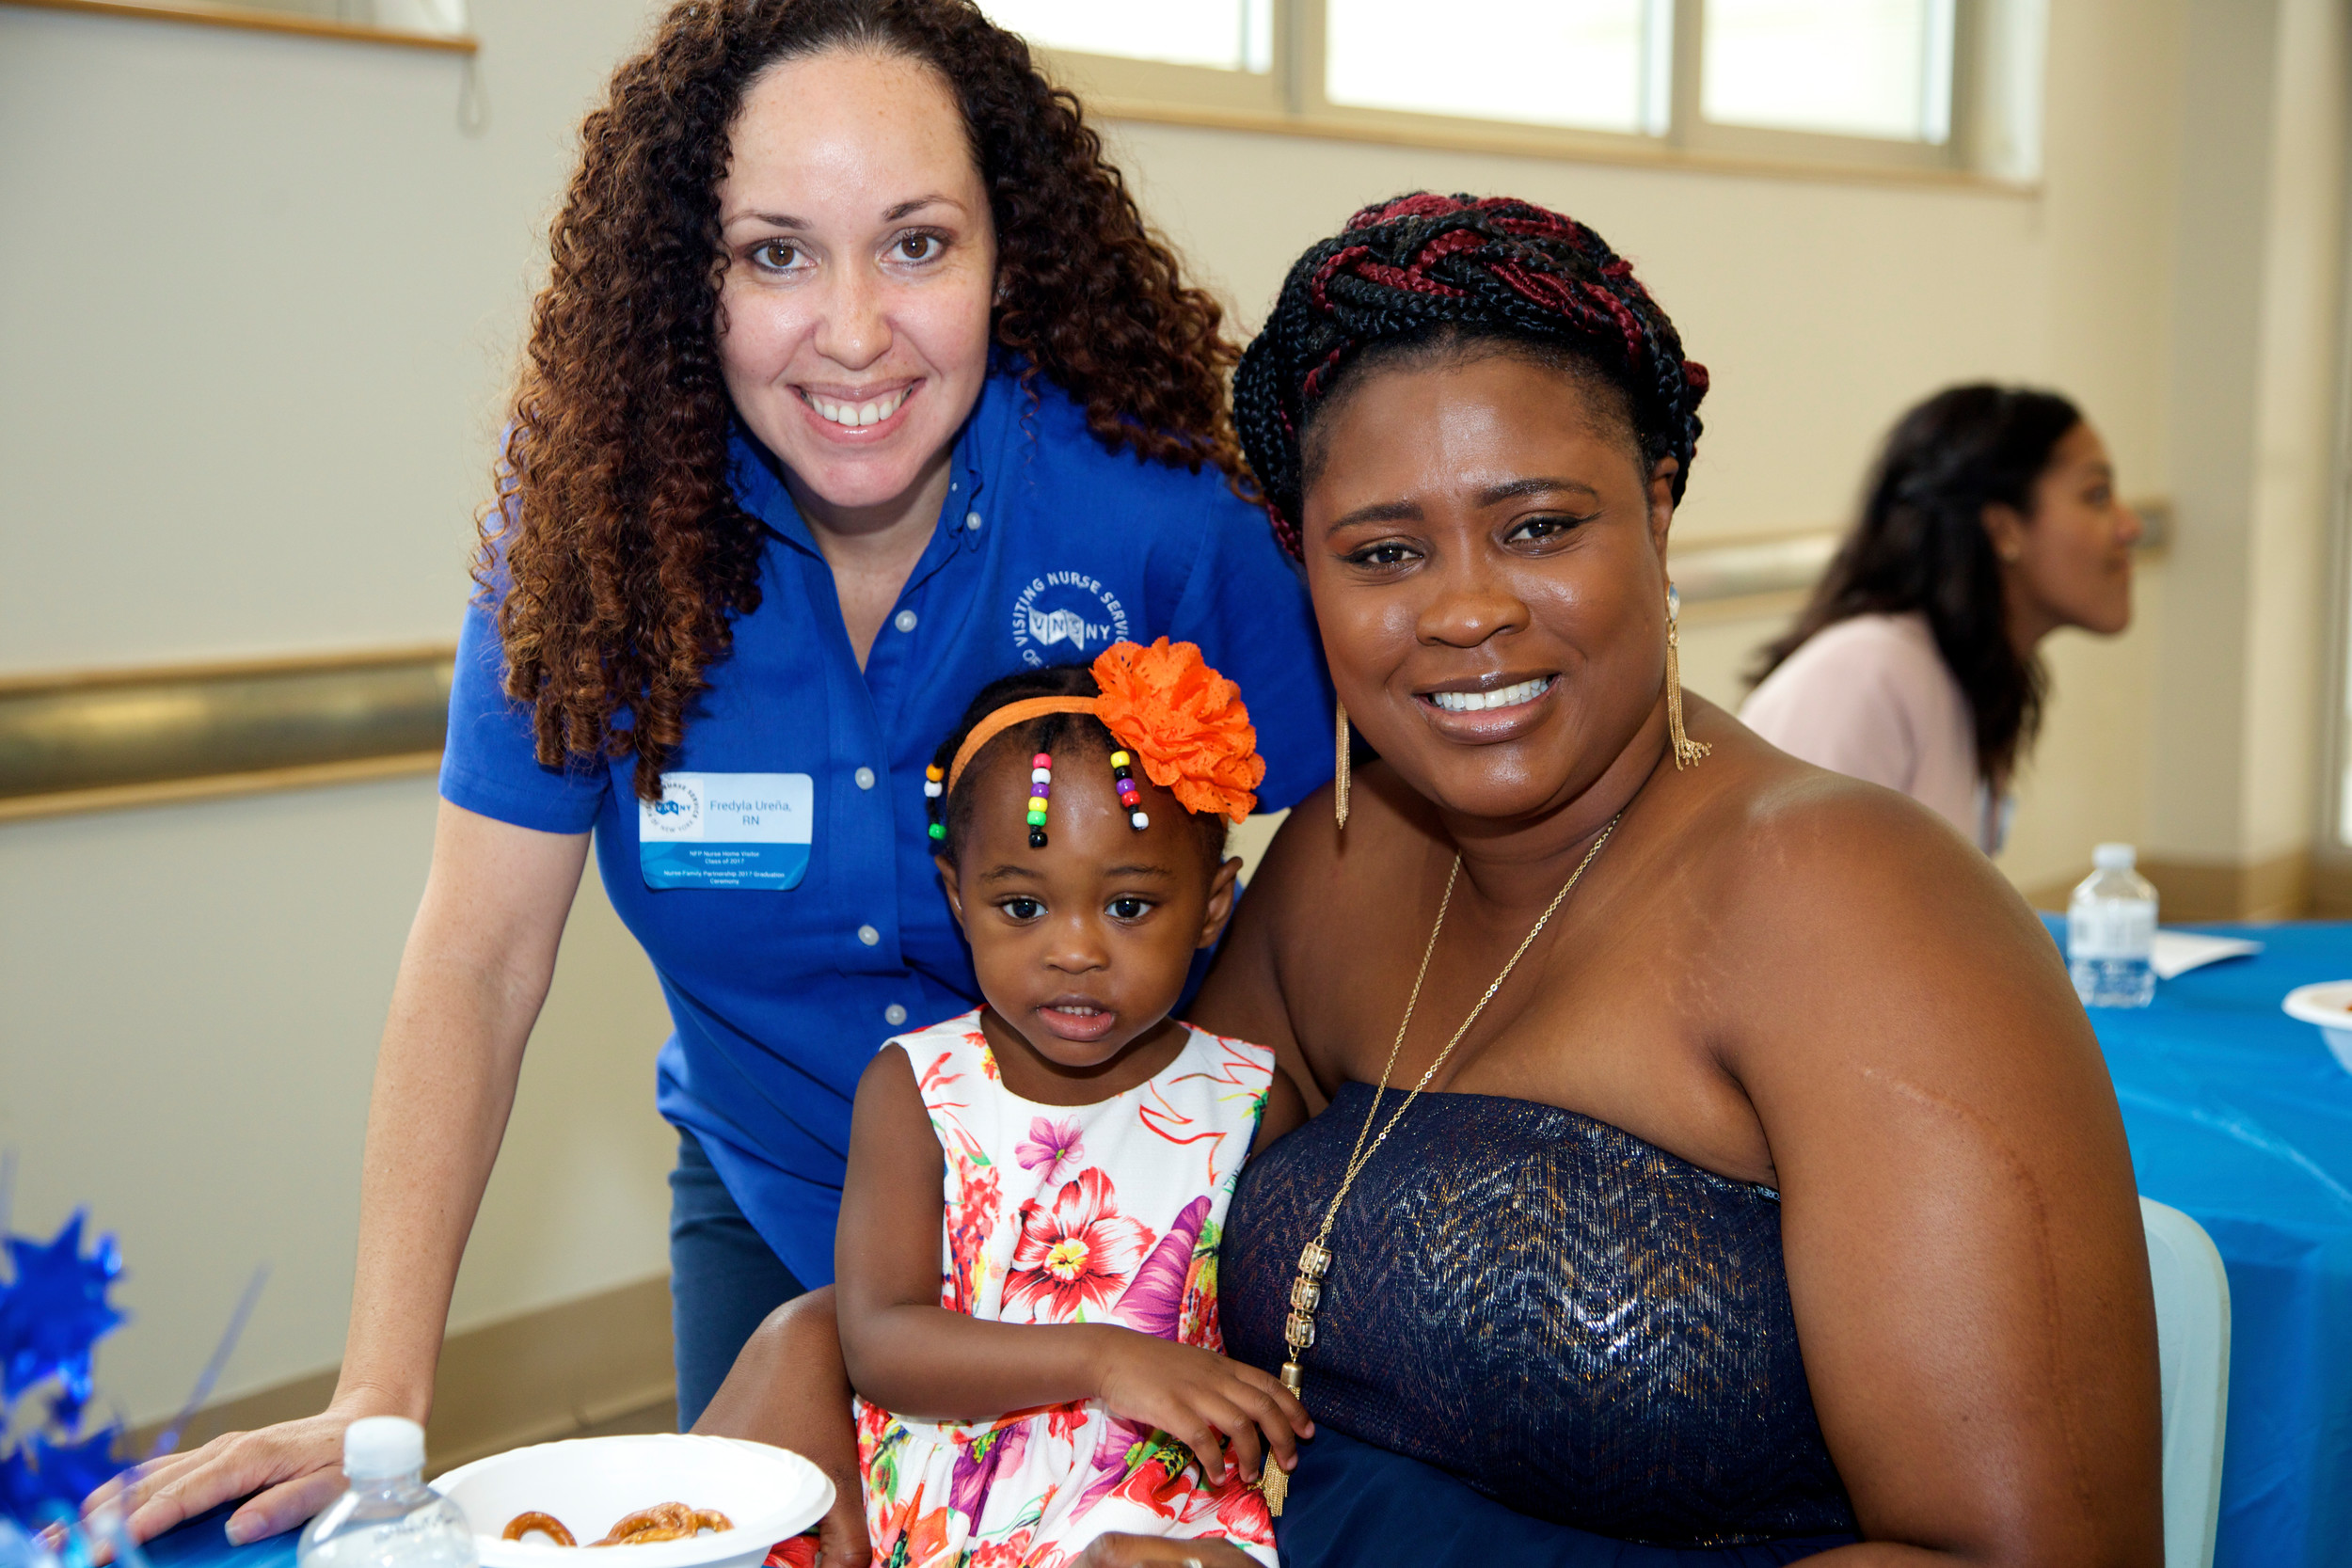 For two years, the Visiting Nurse Service of New York has helped Elmont families grow to be healthy and successful through its Nurse-Family Partnership program. Above, registered nurse Fredyla Urena, left, worked with Simone Foster-Bedward and her daughter Shemaiah Bedward, from Elmont.